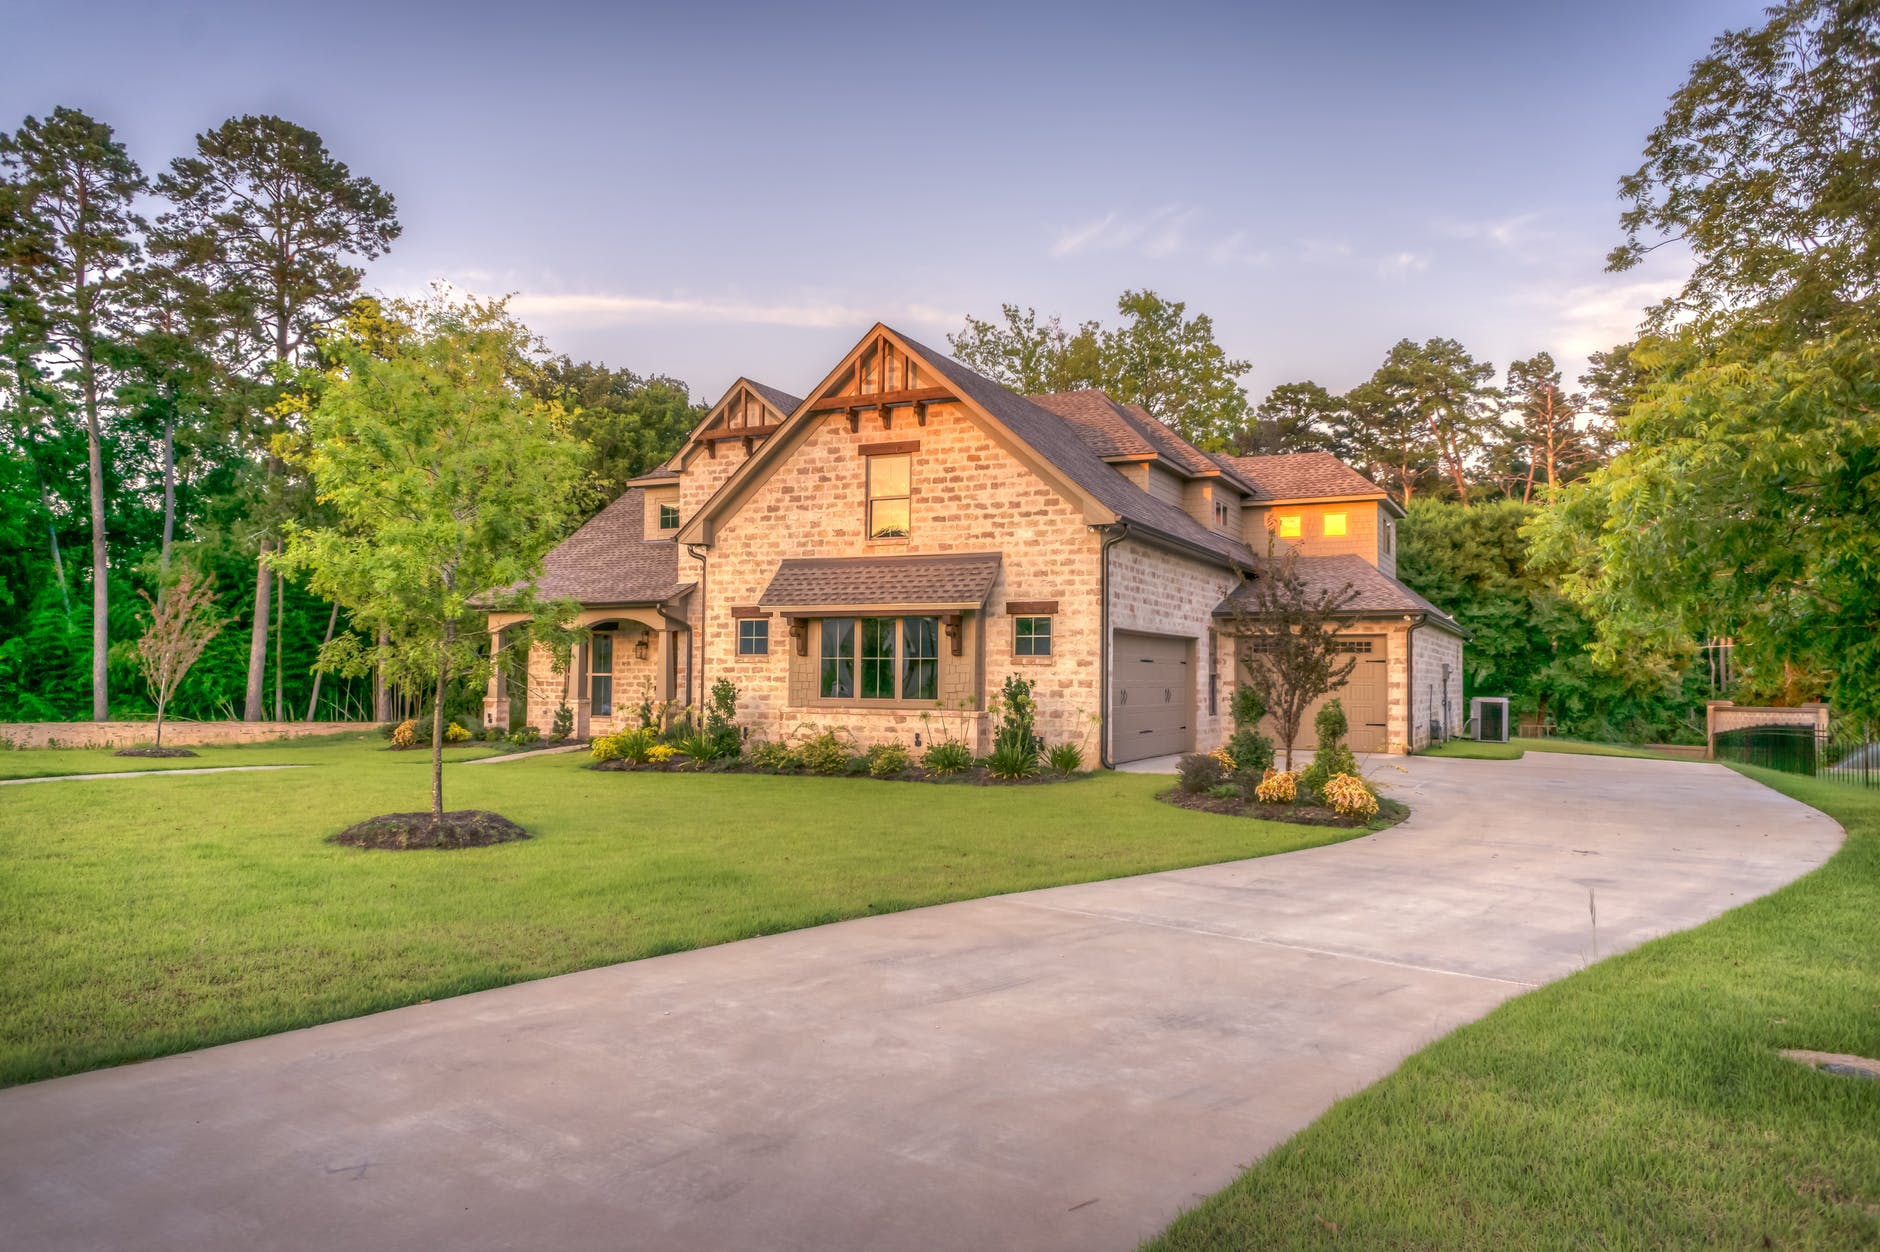 Special Touches to Add to Your Home's Exterior